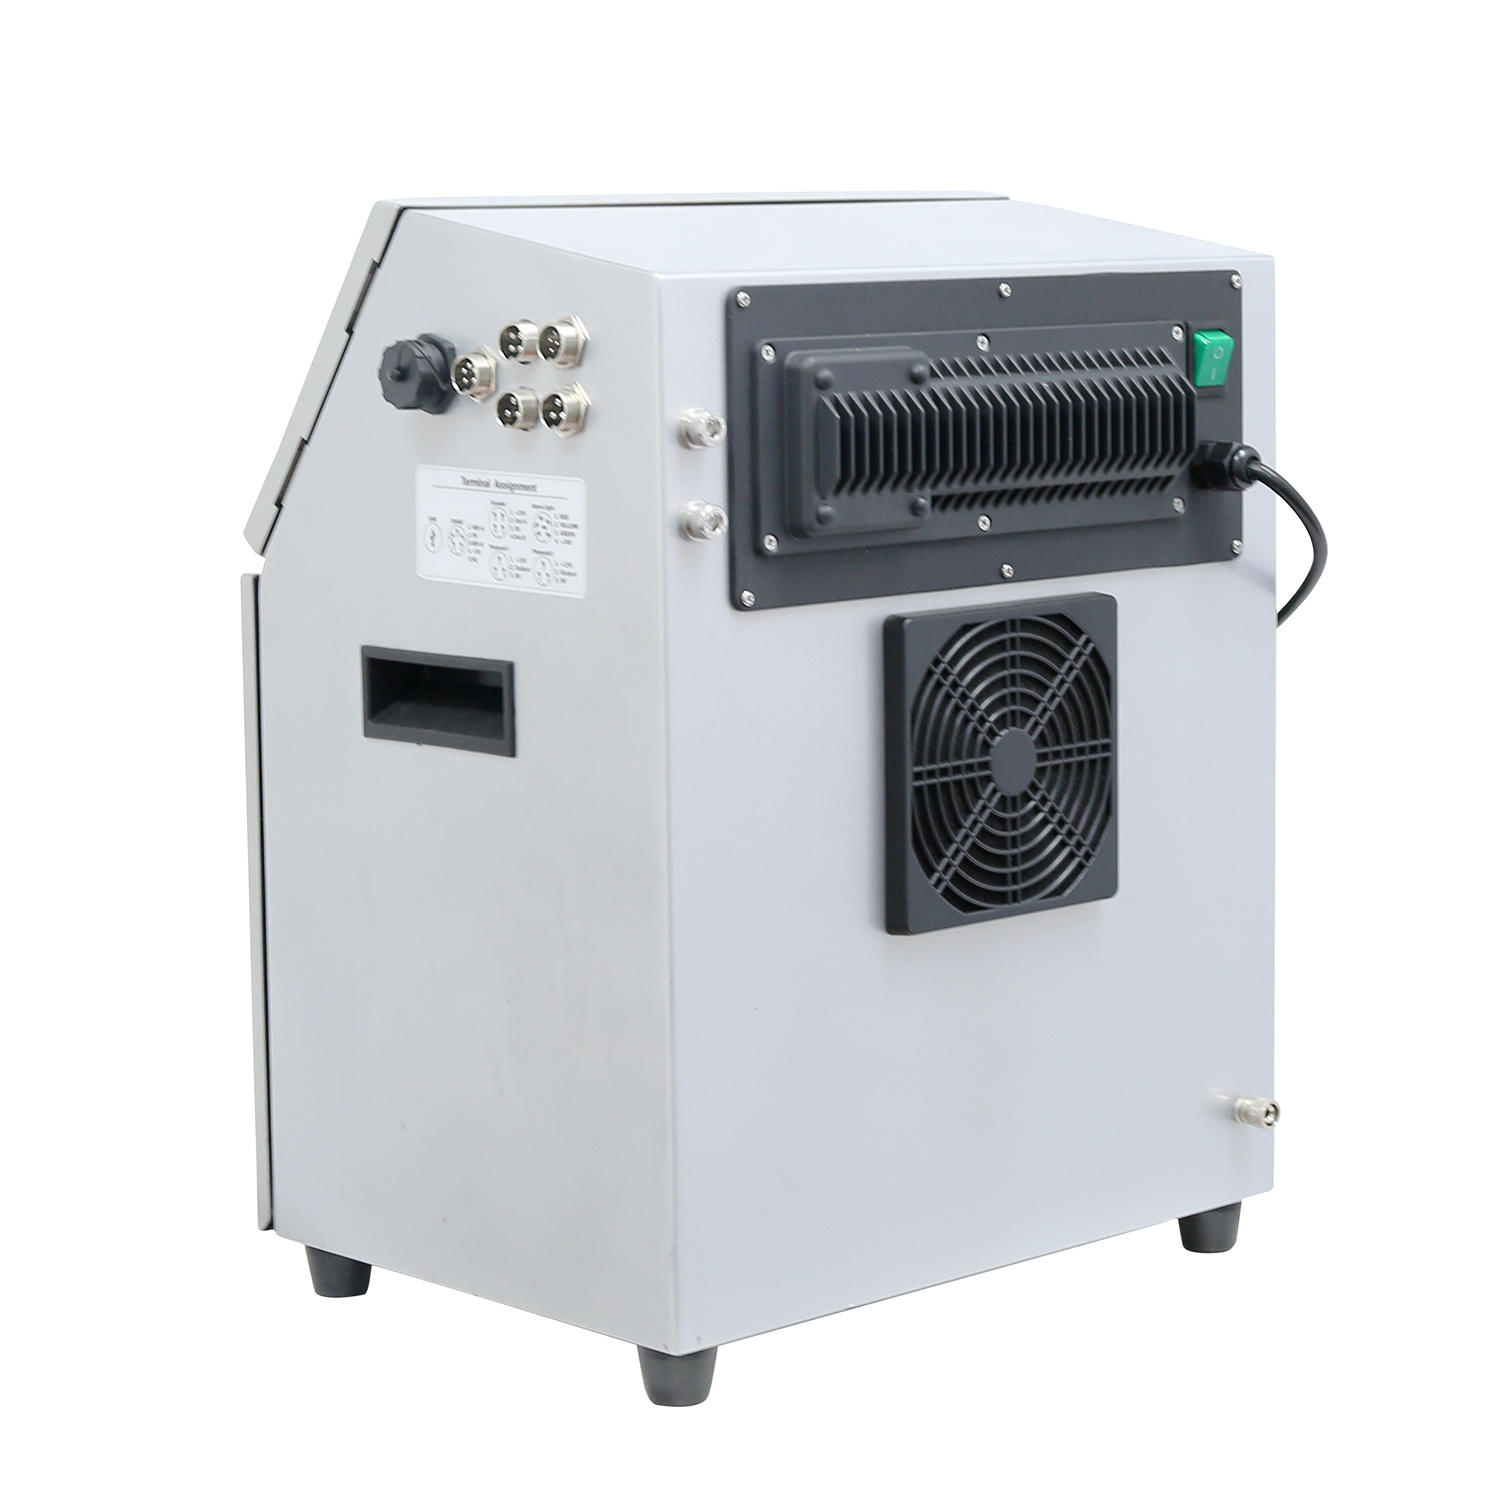 Leadtech Lt800 Numbering Printing Machines Small Coding Printer